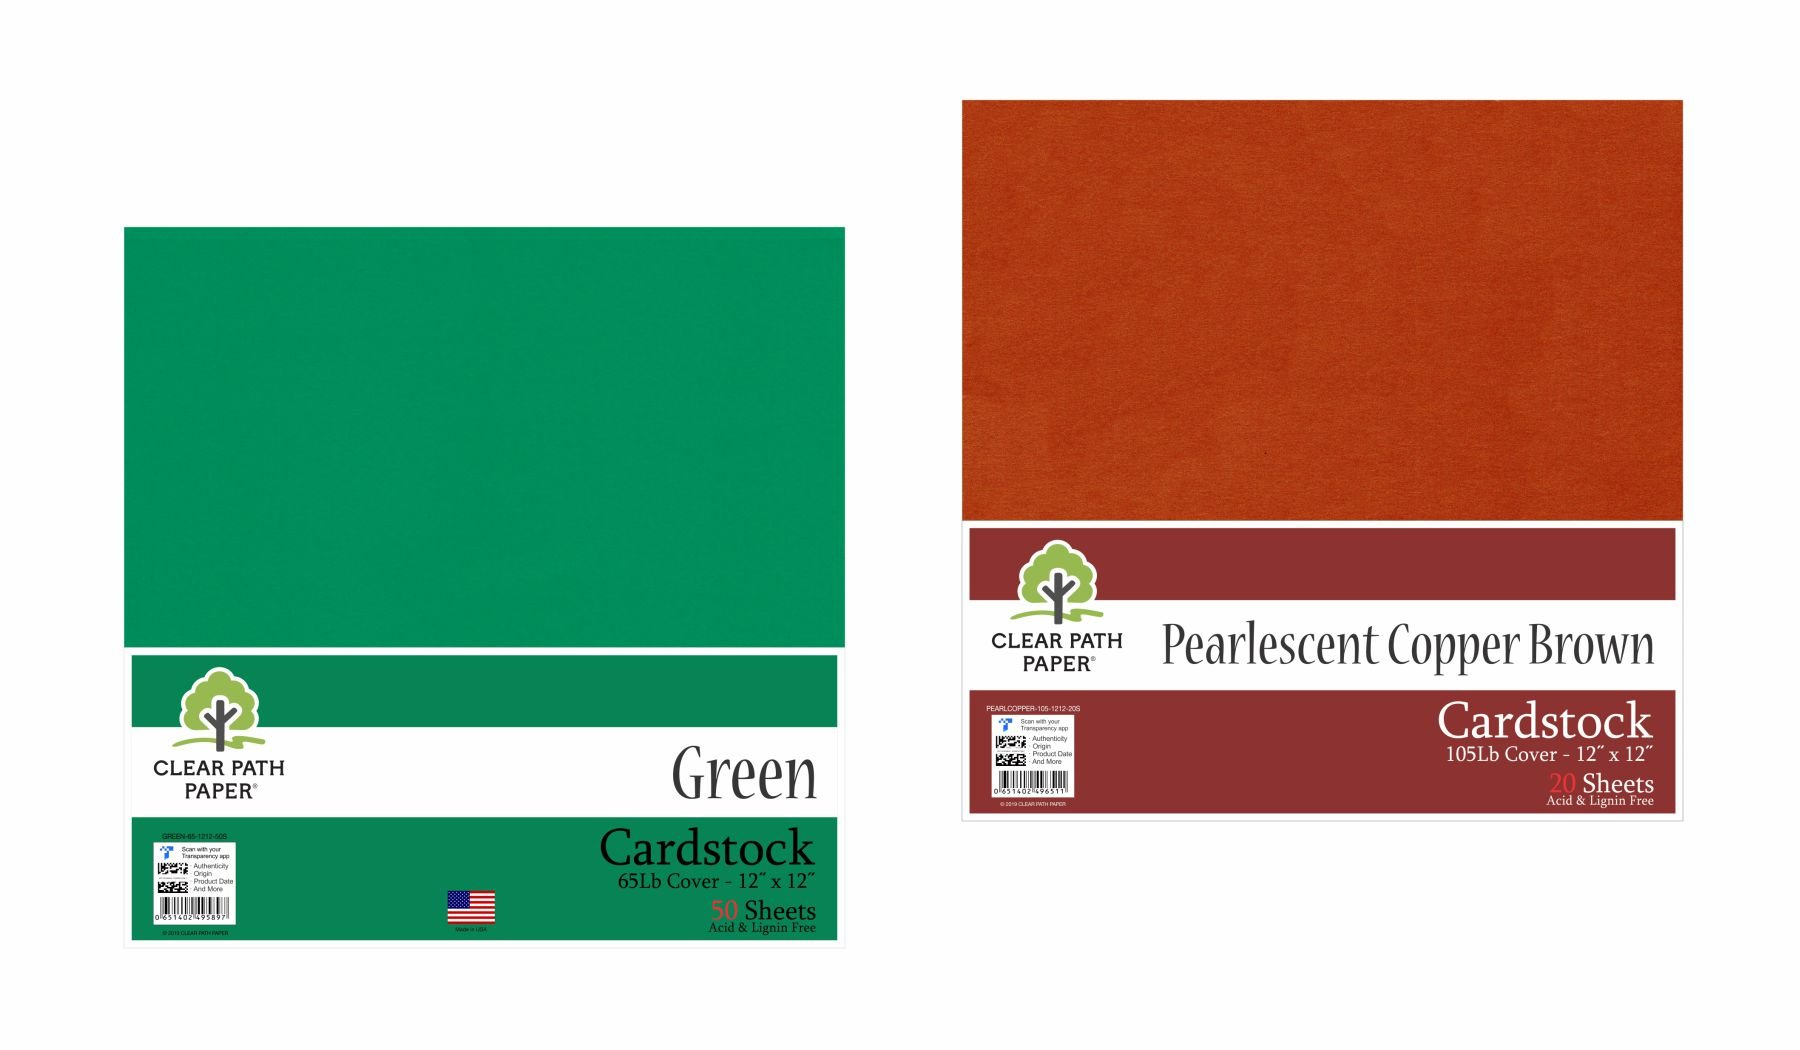 Image of an Amazon bundle of Green and Pearlescent Copper Brown cardstock packs